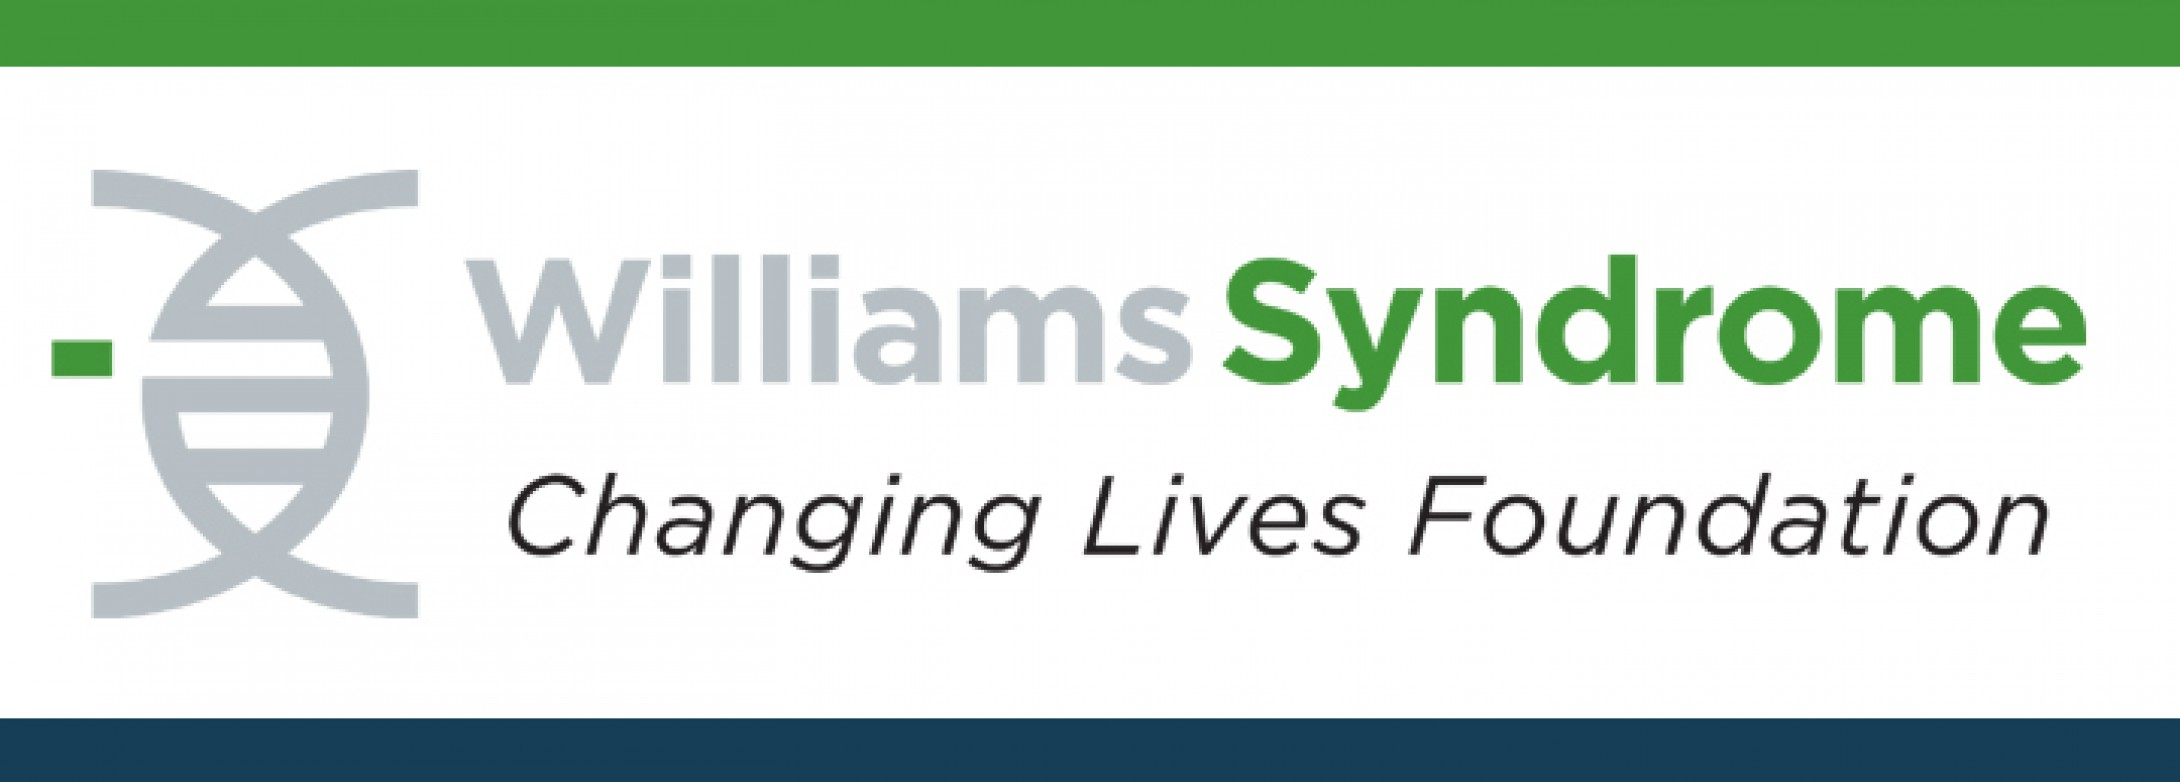 Strategic Vision, LLC Is Proud To Be Helping The Williams Syndrome Changing Lives Foundation